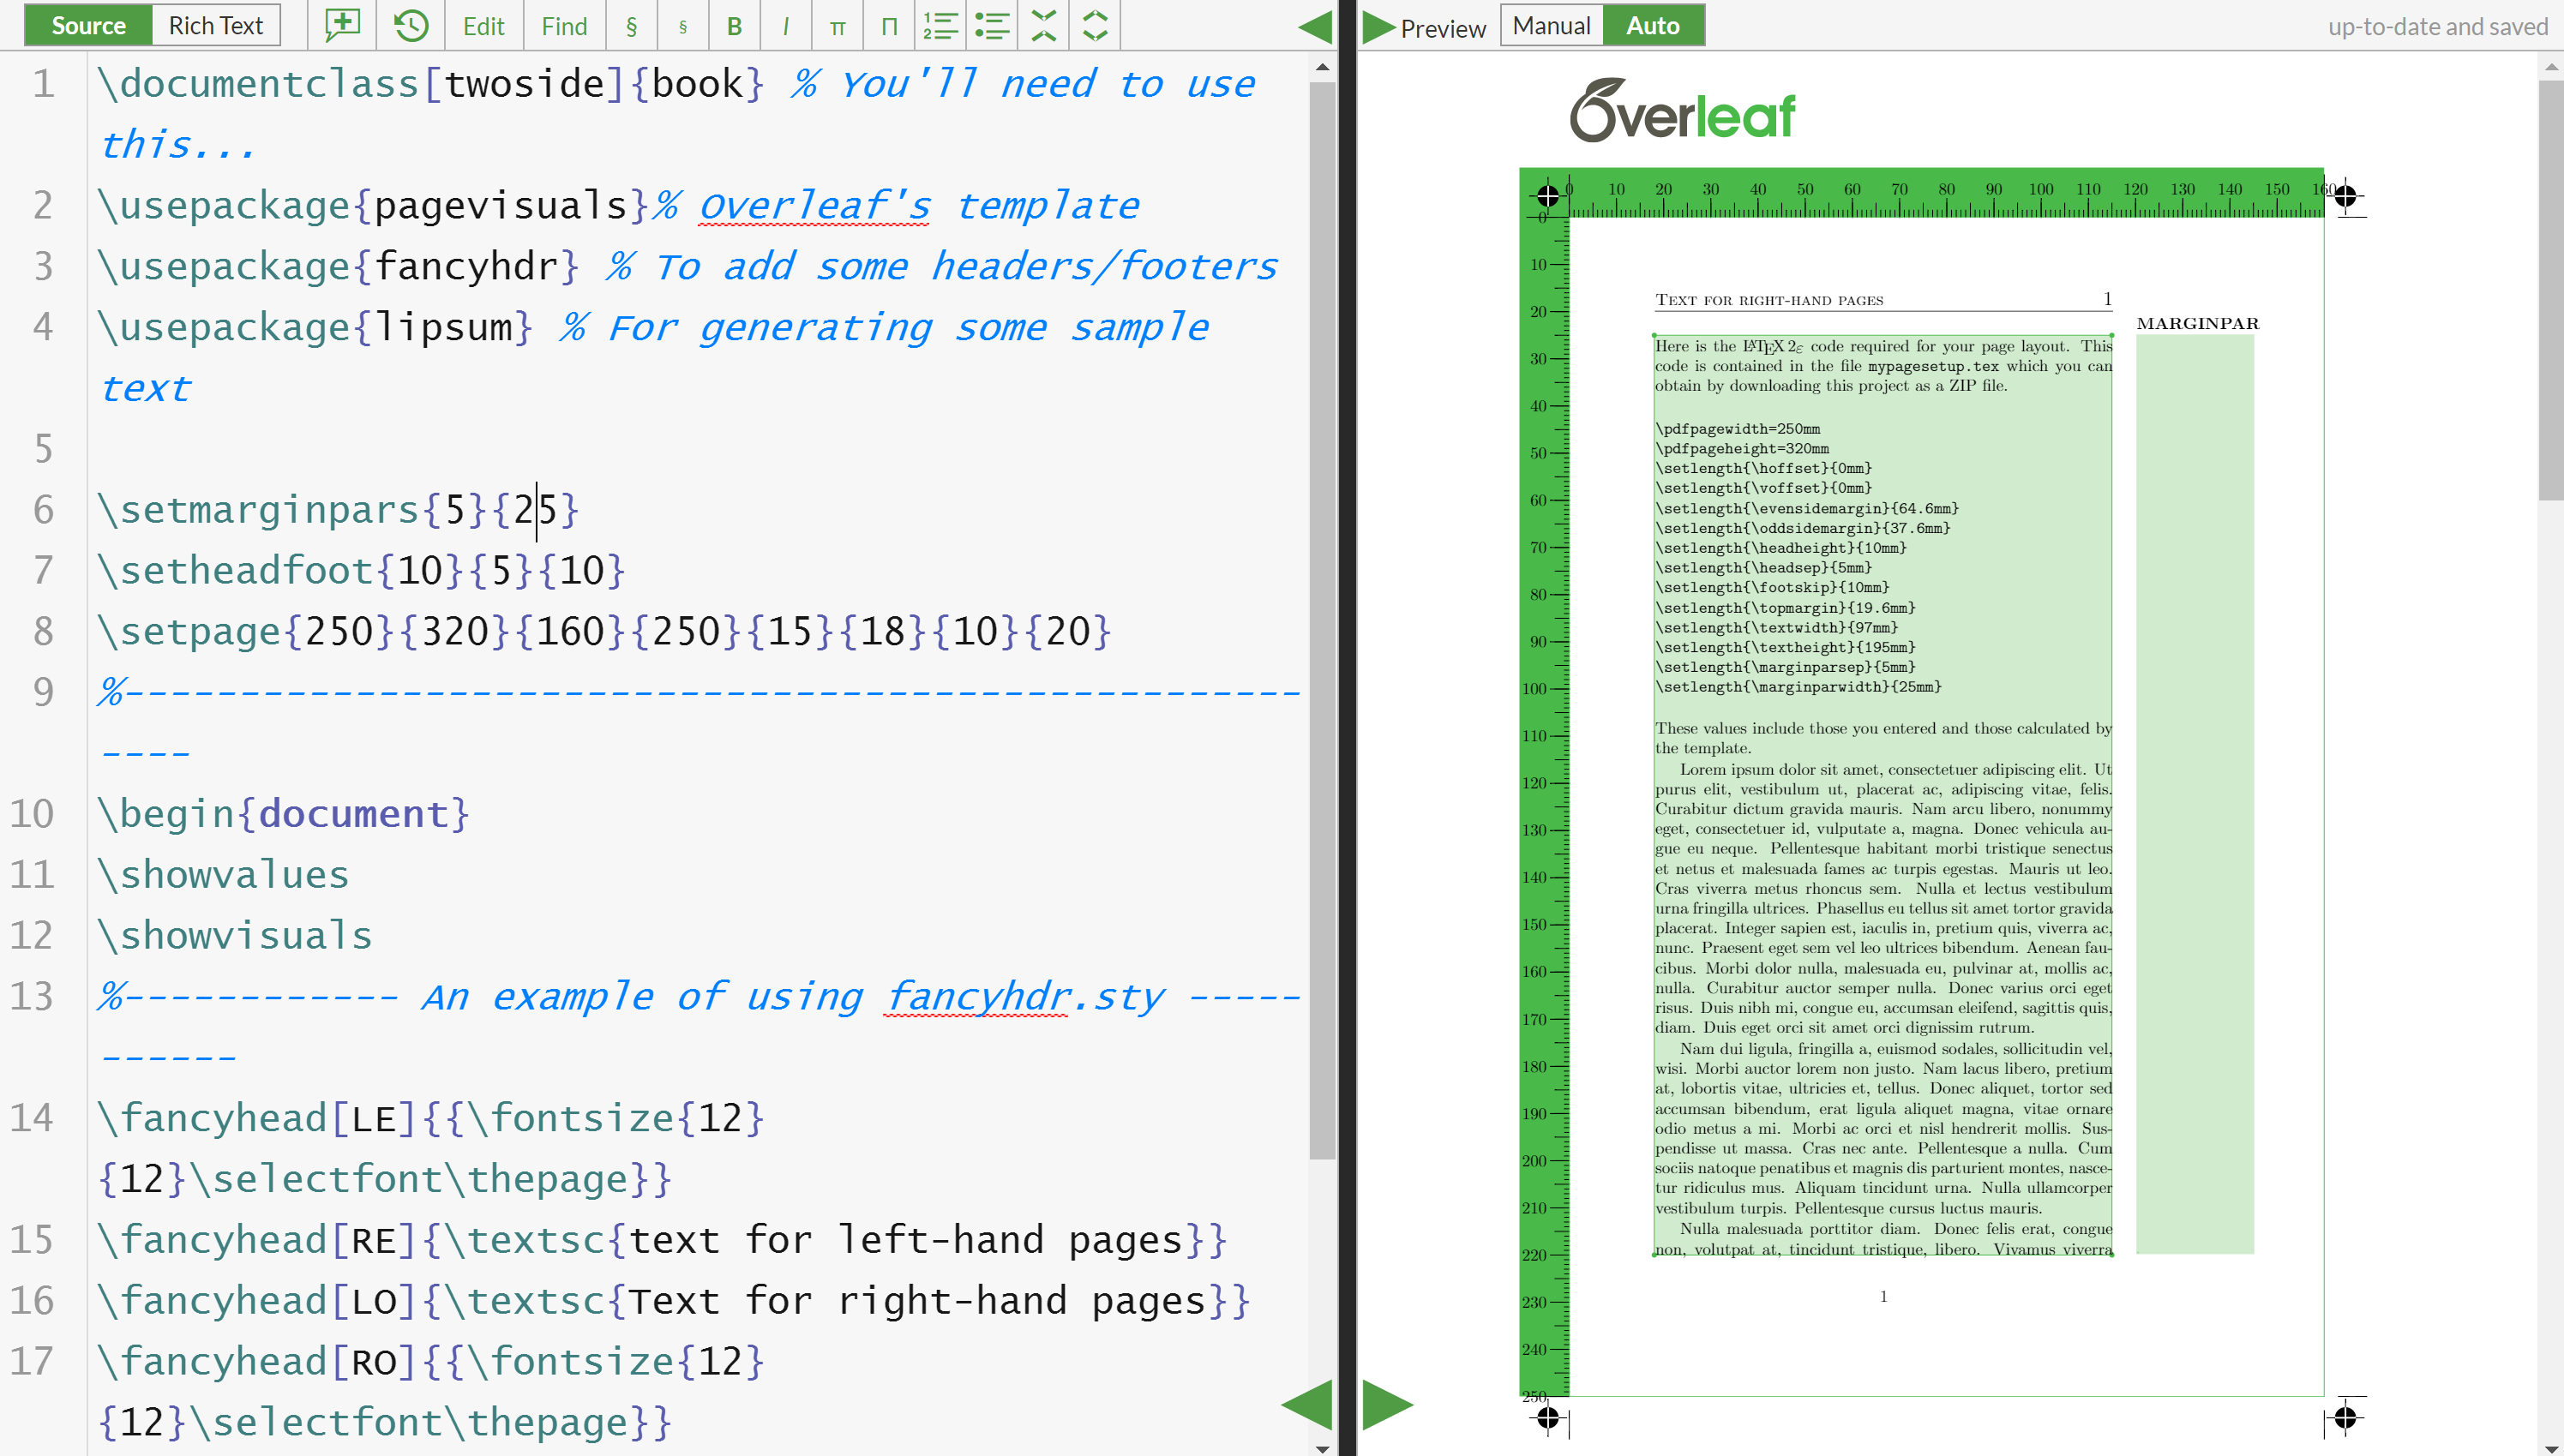 Screenshot of the Overleaf template